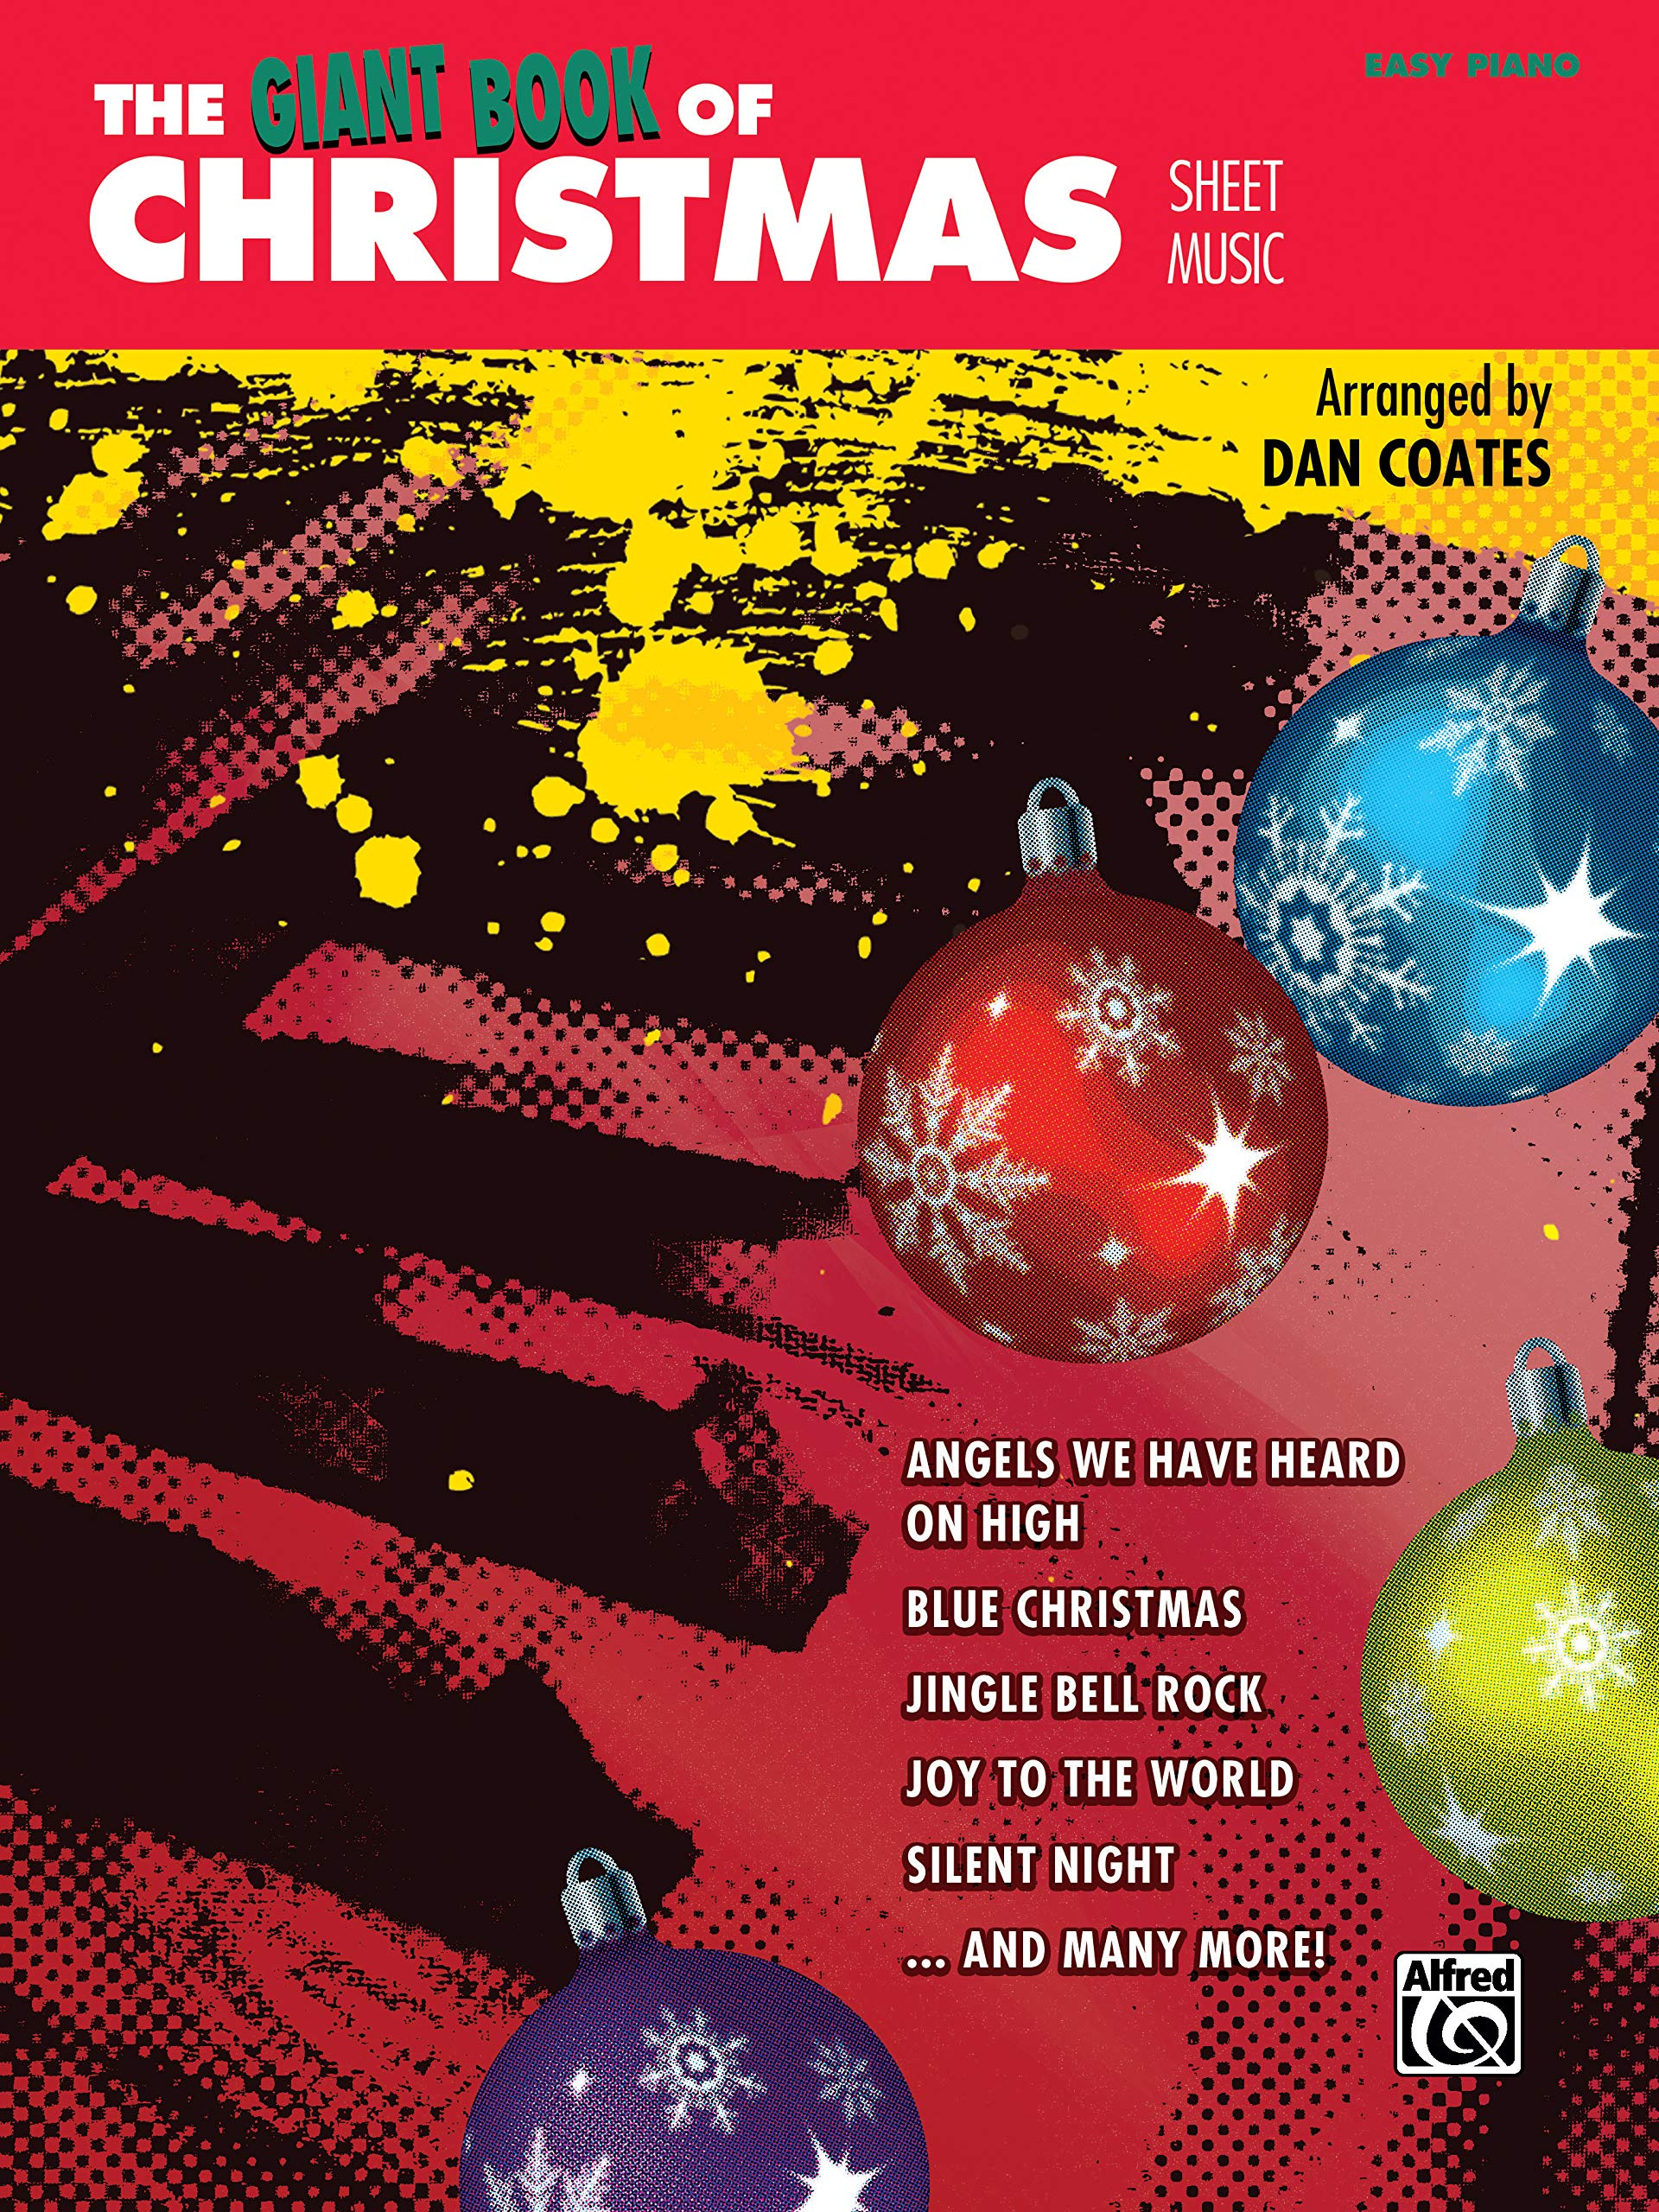 Piano//Vocal//Guitar Songbook 42389 The Giant Book of Christmas Sheet Music